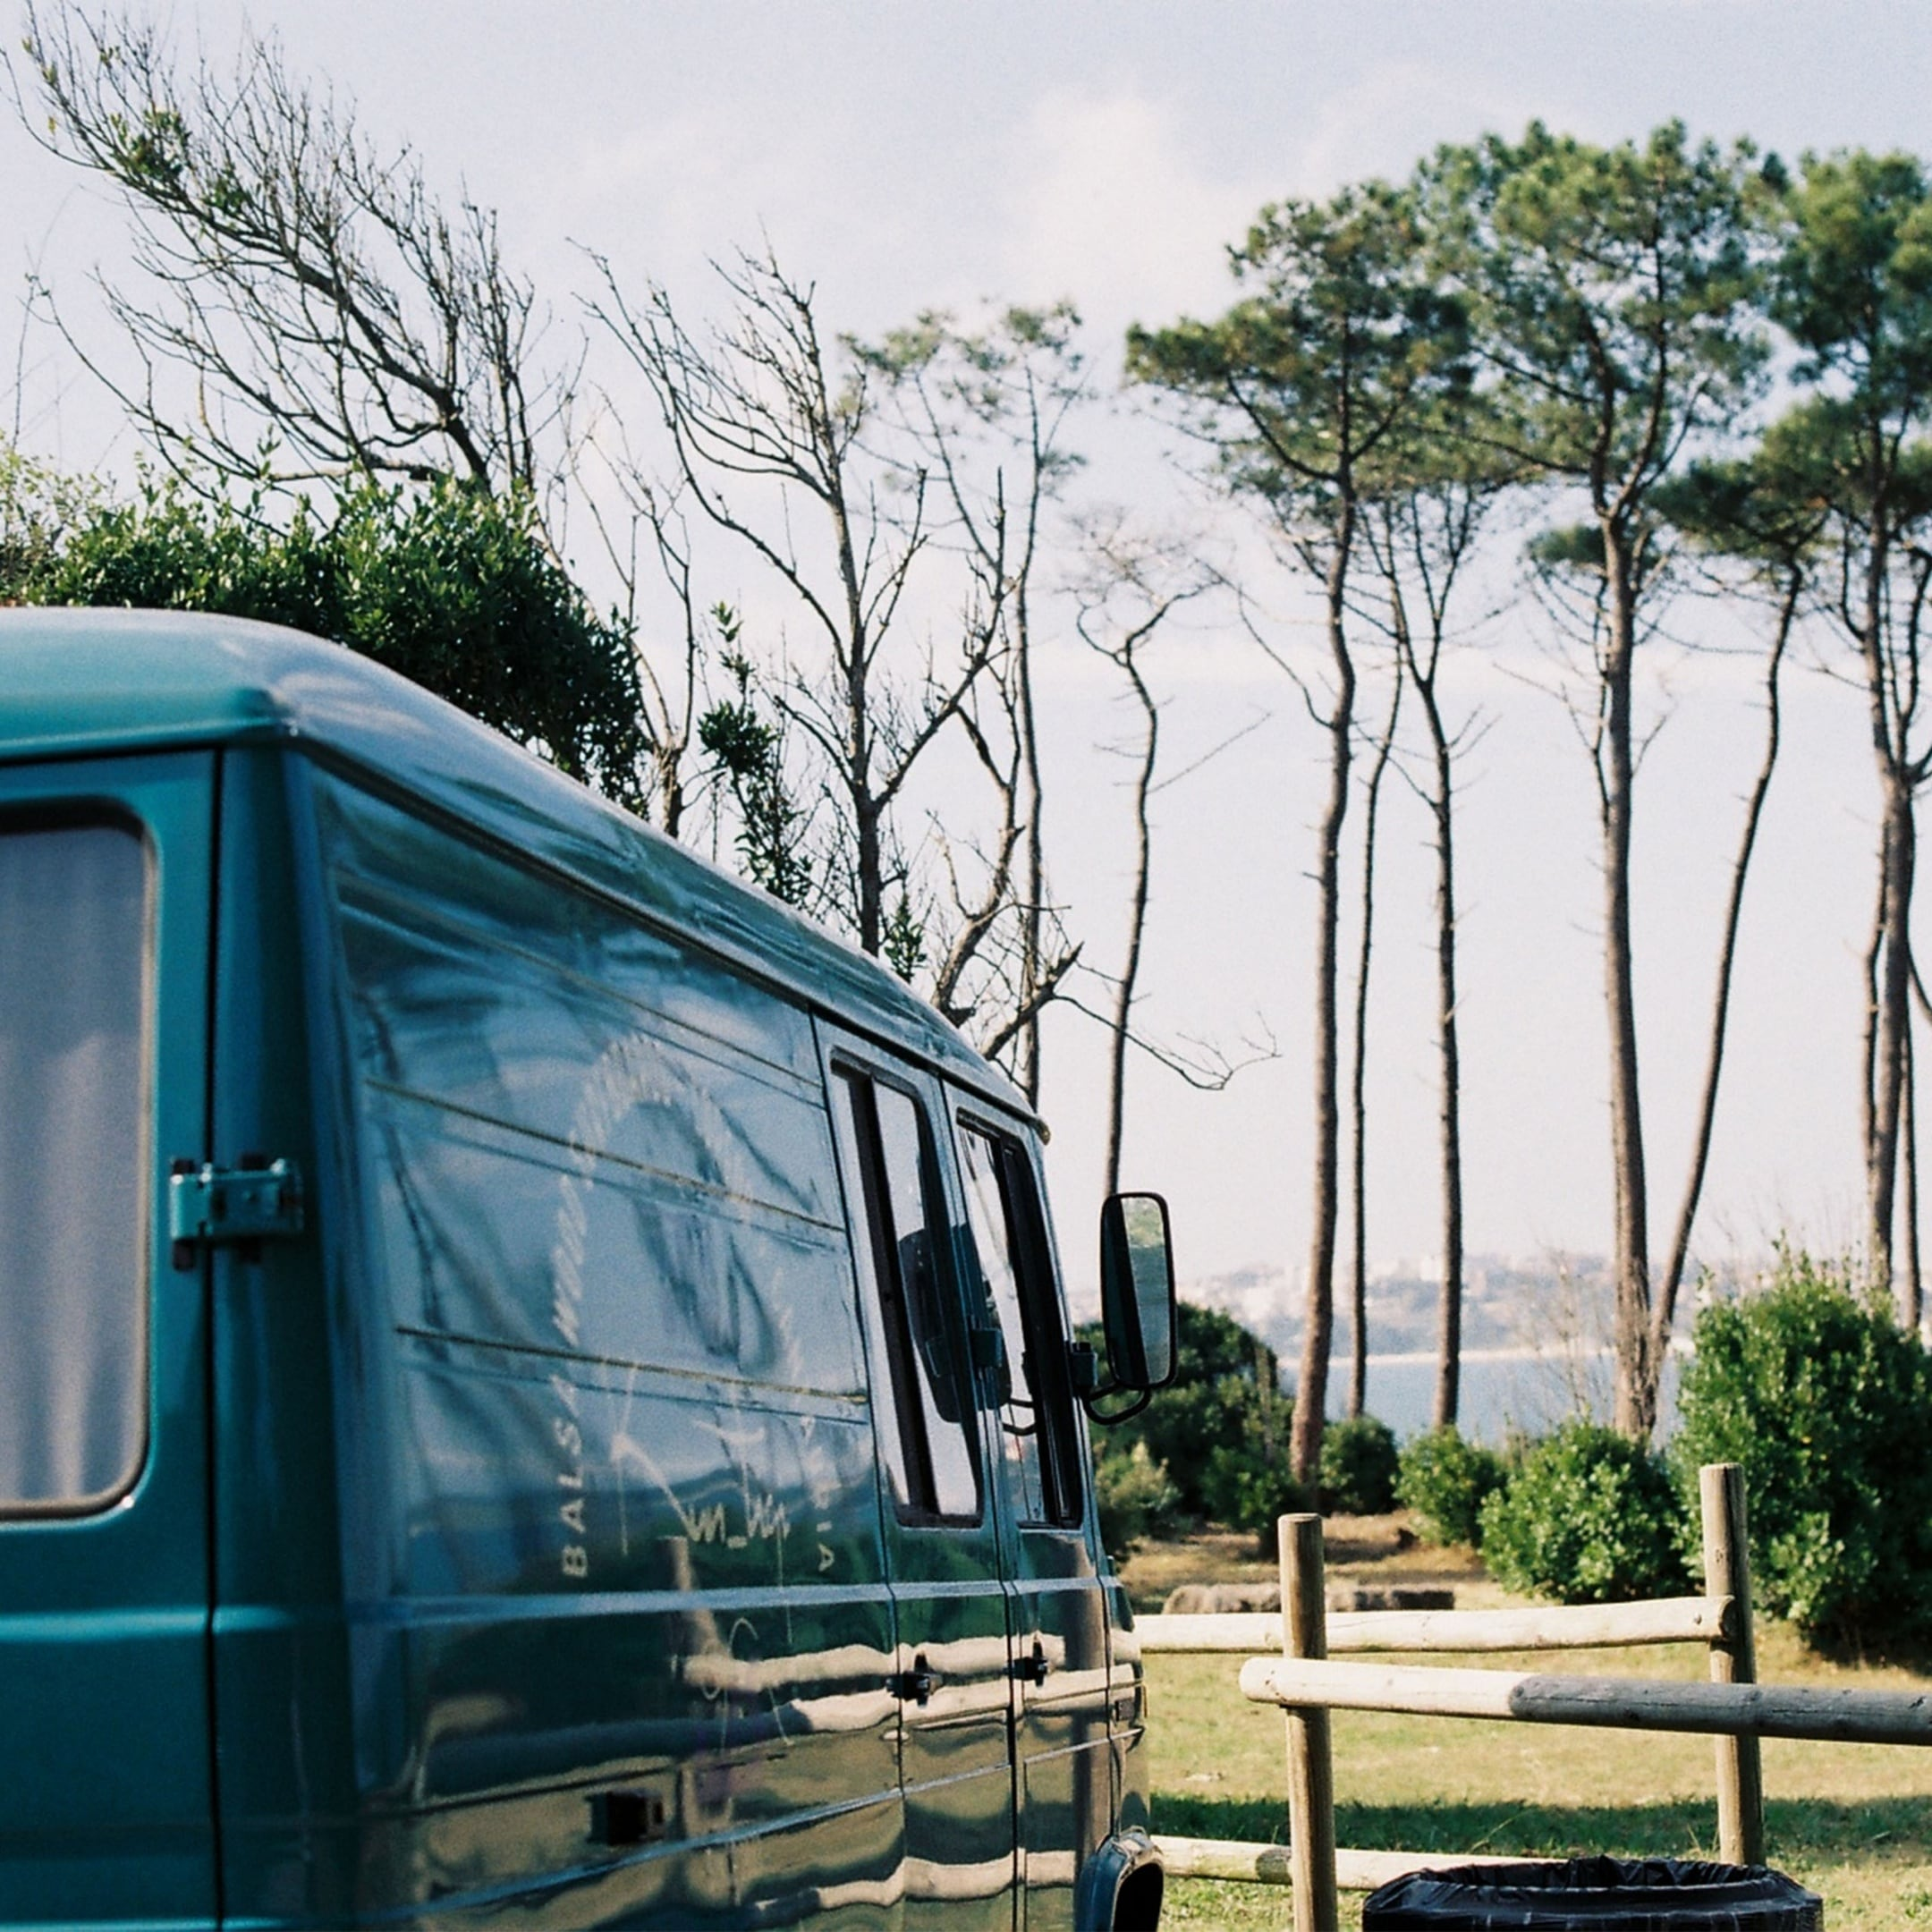 The 508 D parked in front of a backdrop of pine trees with the sea behind them